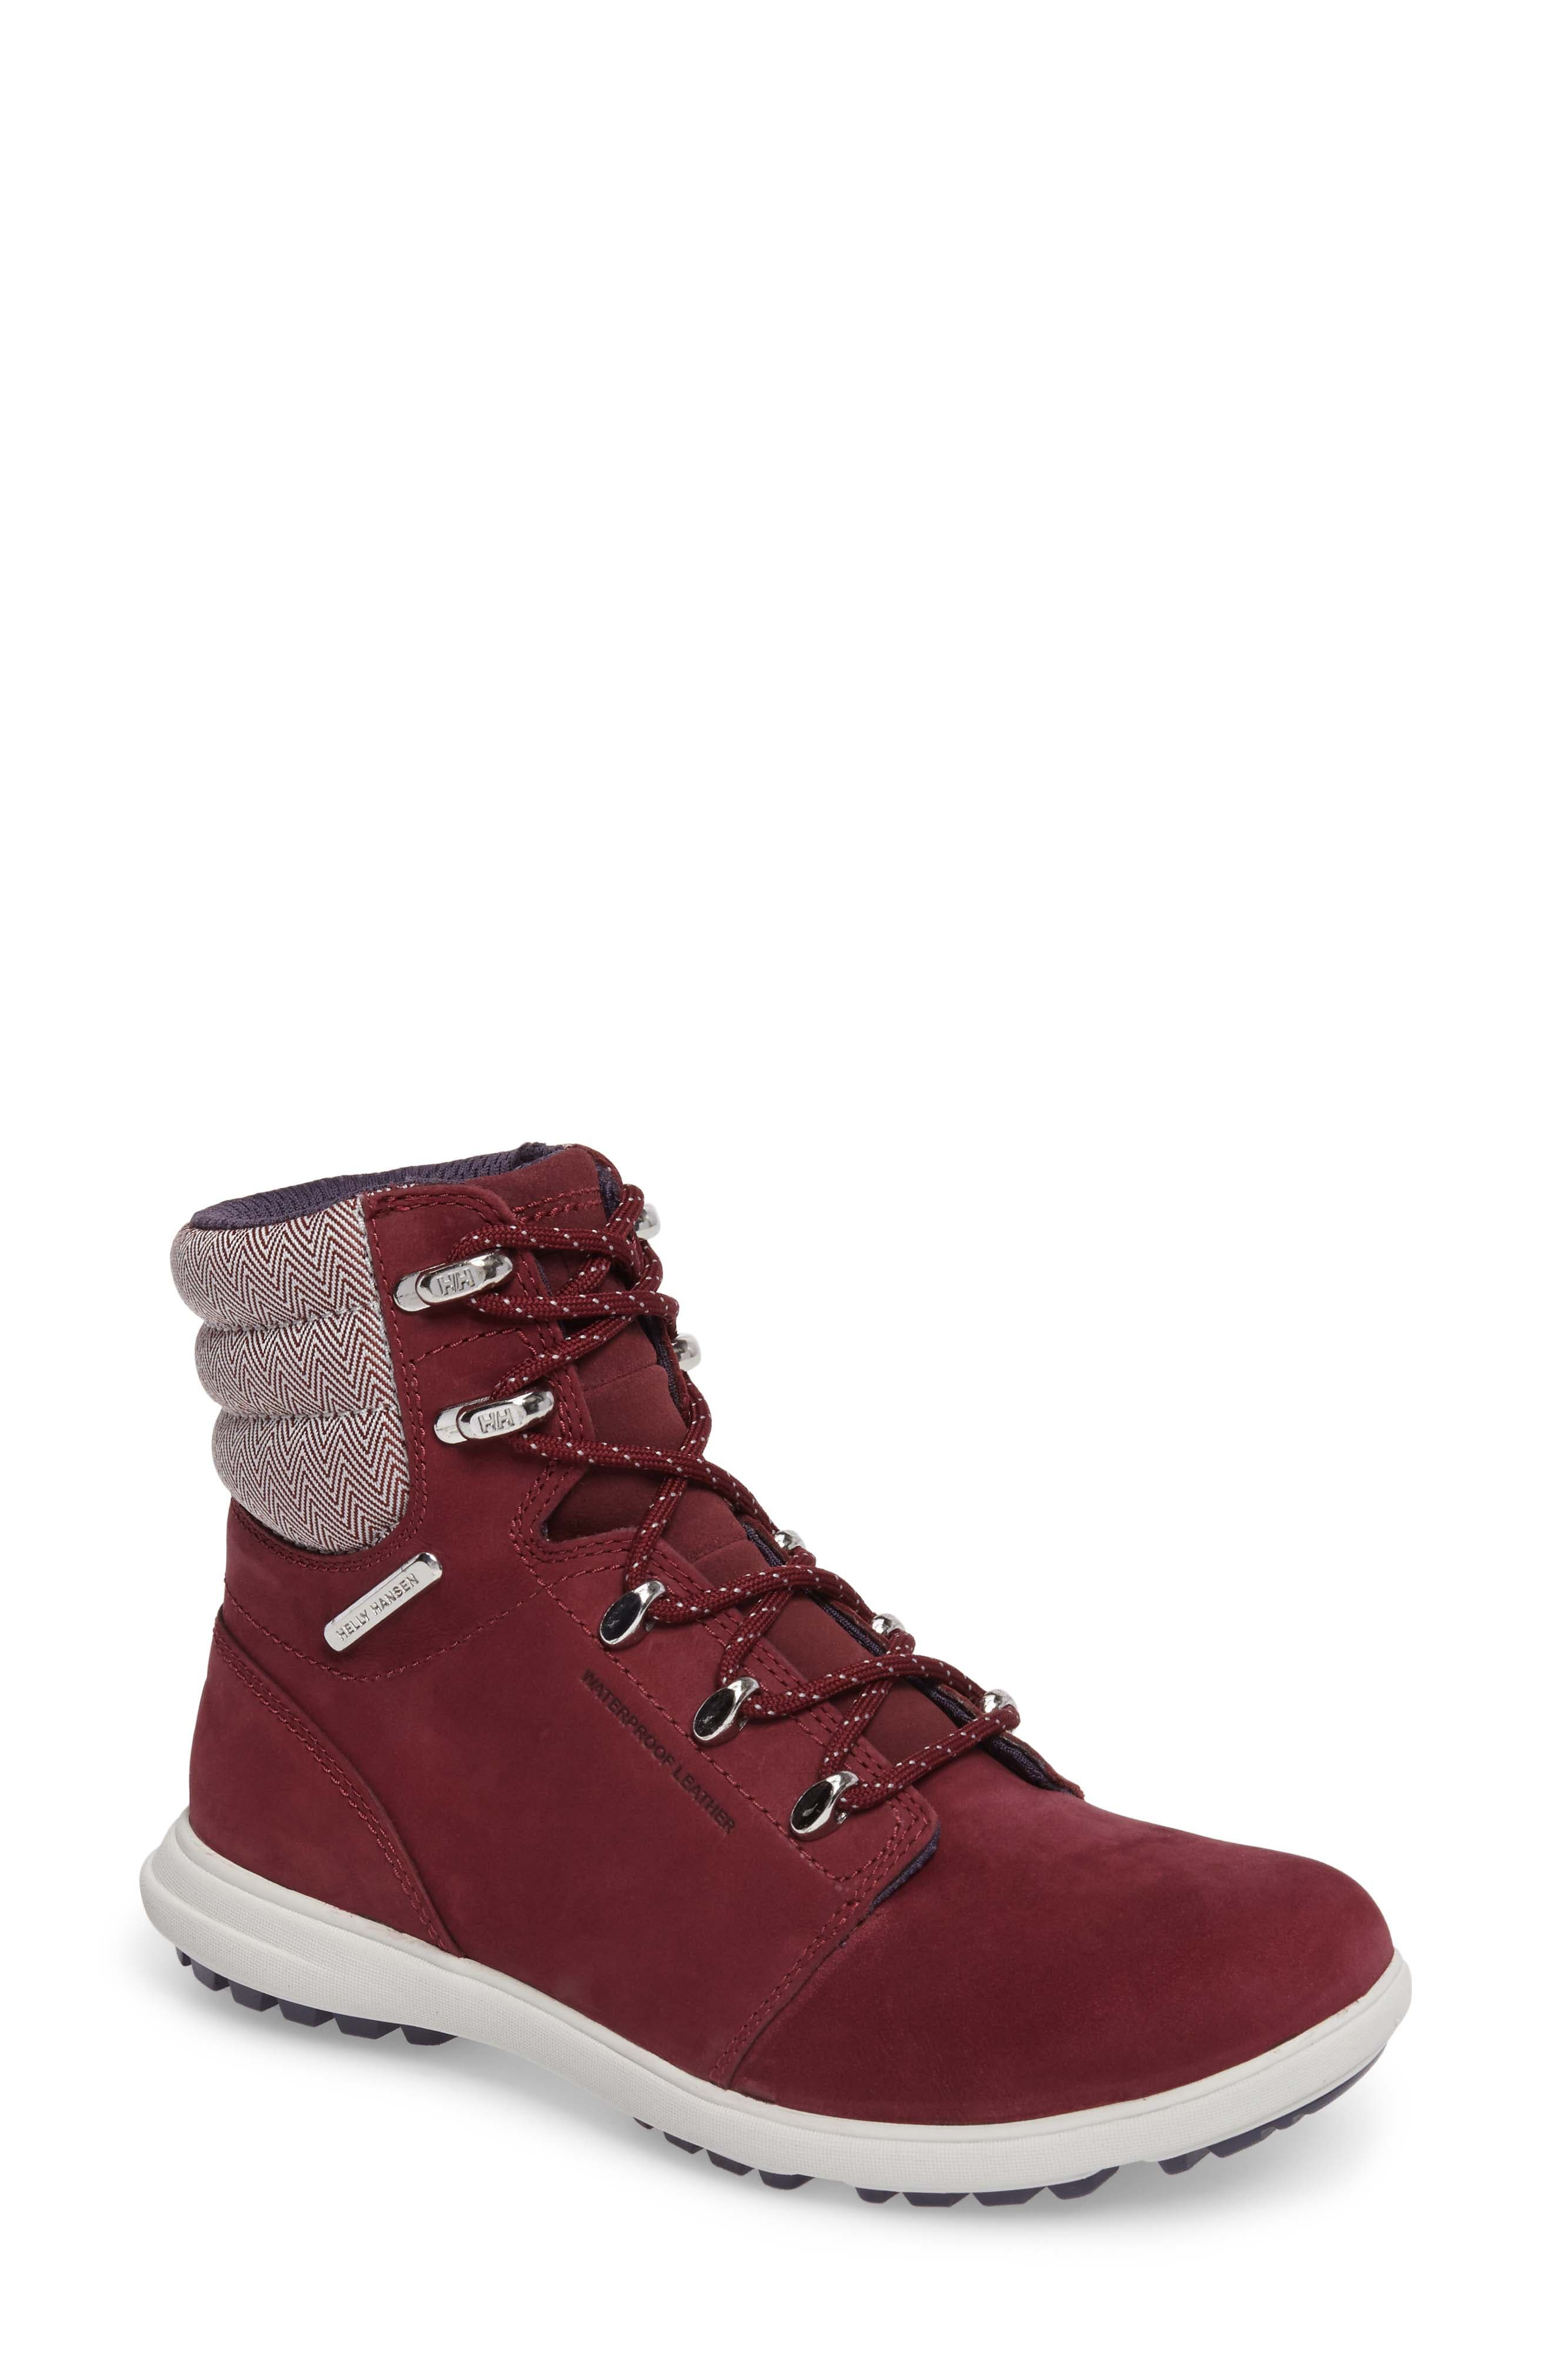 'W.A.S.T 2' Waterproof Hiker Boot,                         Main,                         color, Port / Ash Grey / Graphite